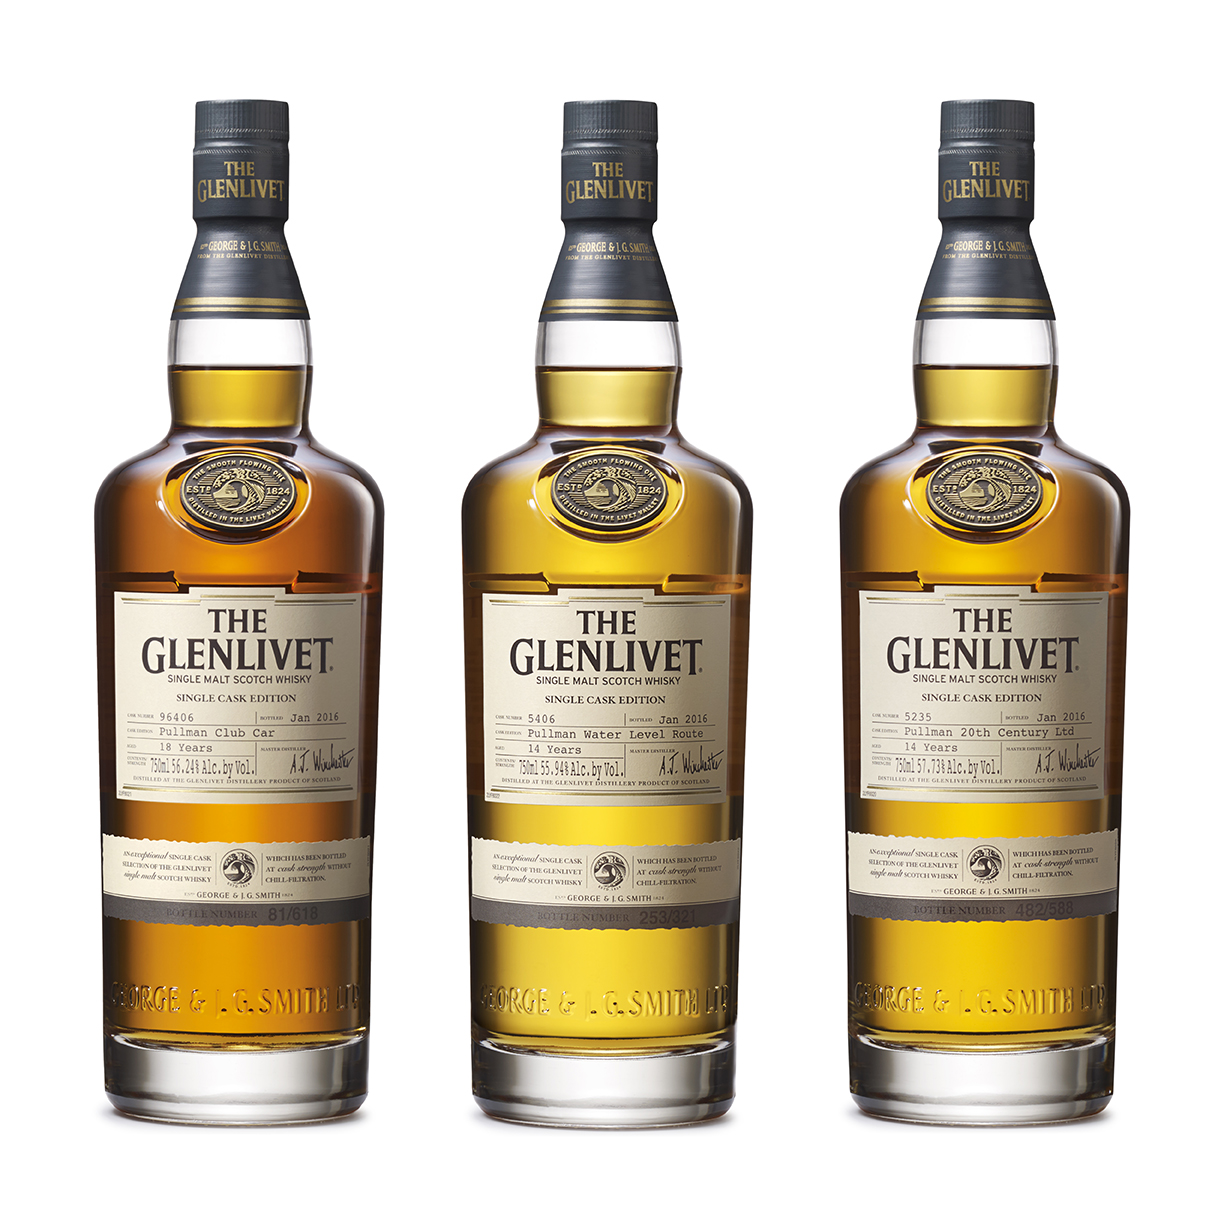 The Glenlivet Releases Three Single Cask Whiskies